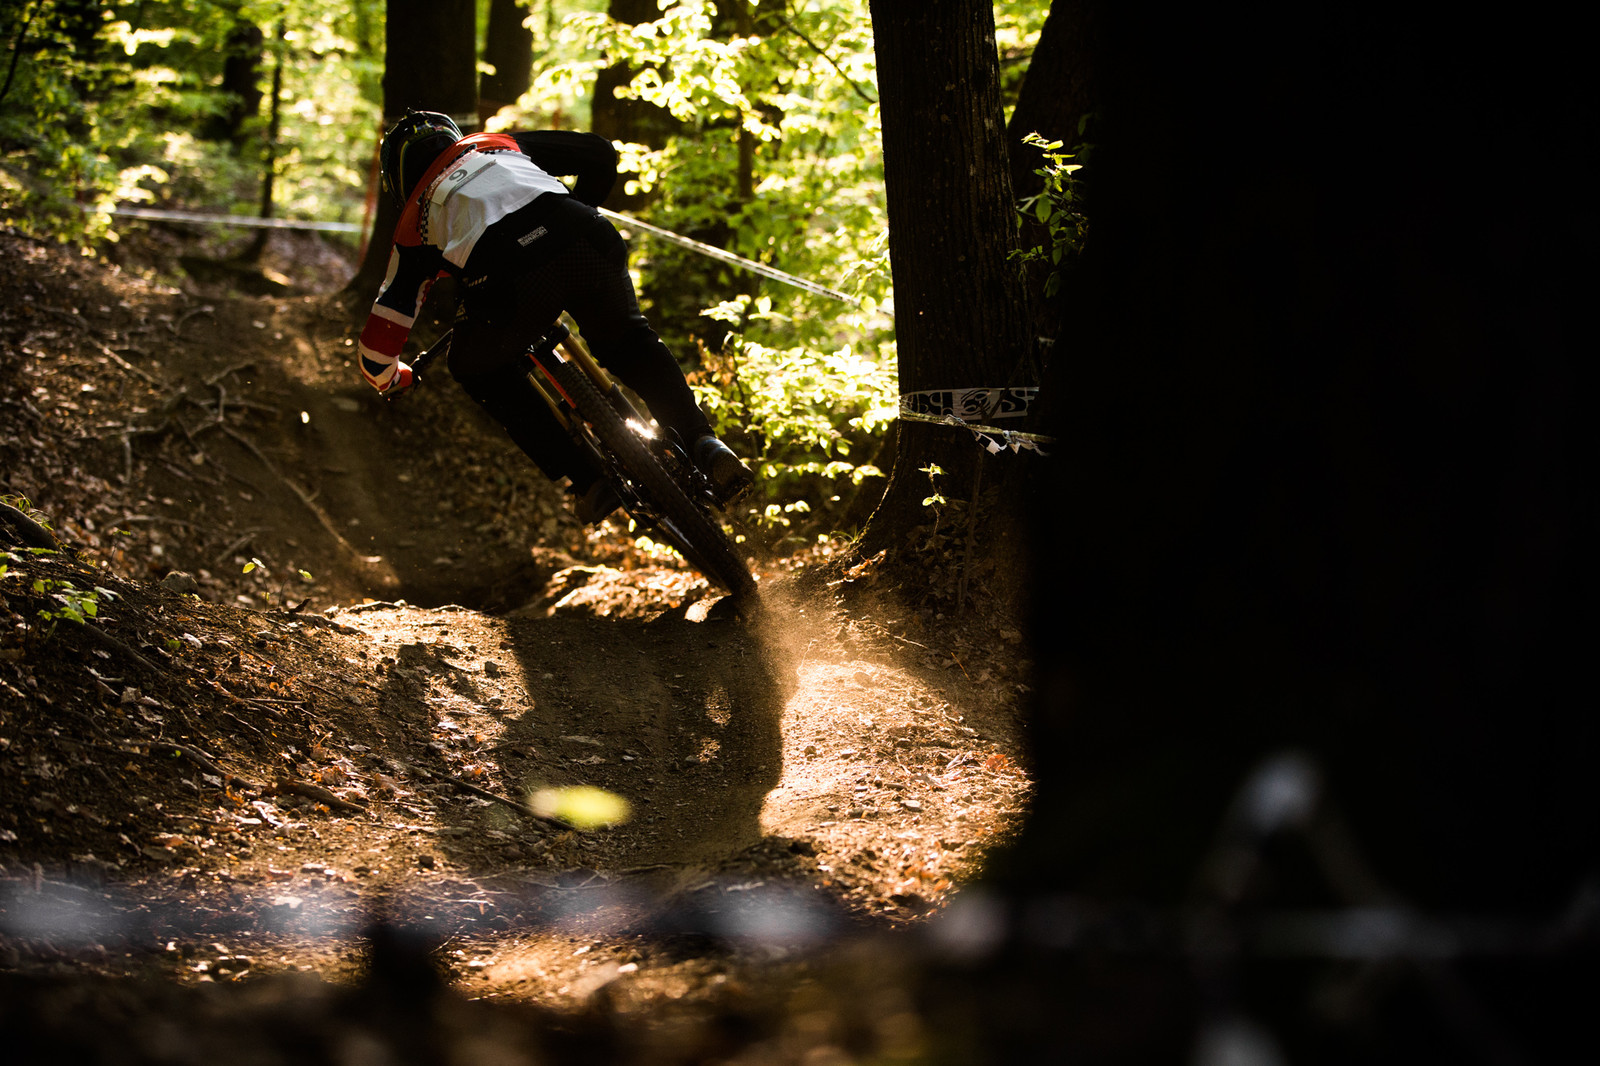 RACE REPORT - iXS DH Cup Maribor - iXS Downhill Cup Maribor - Race Gallery - Mountain Biking Pictures - Vital MTB